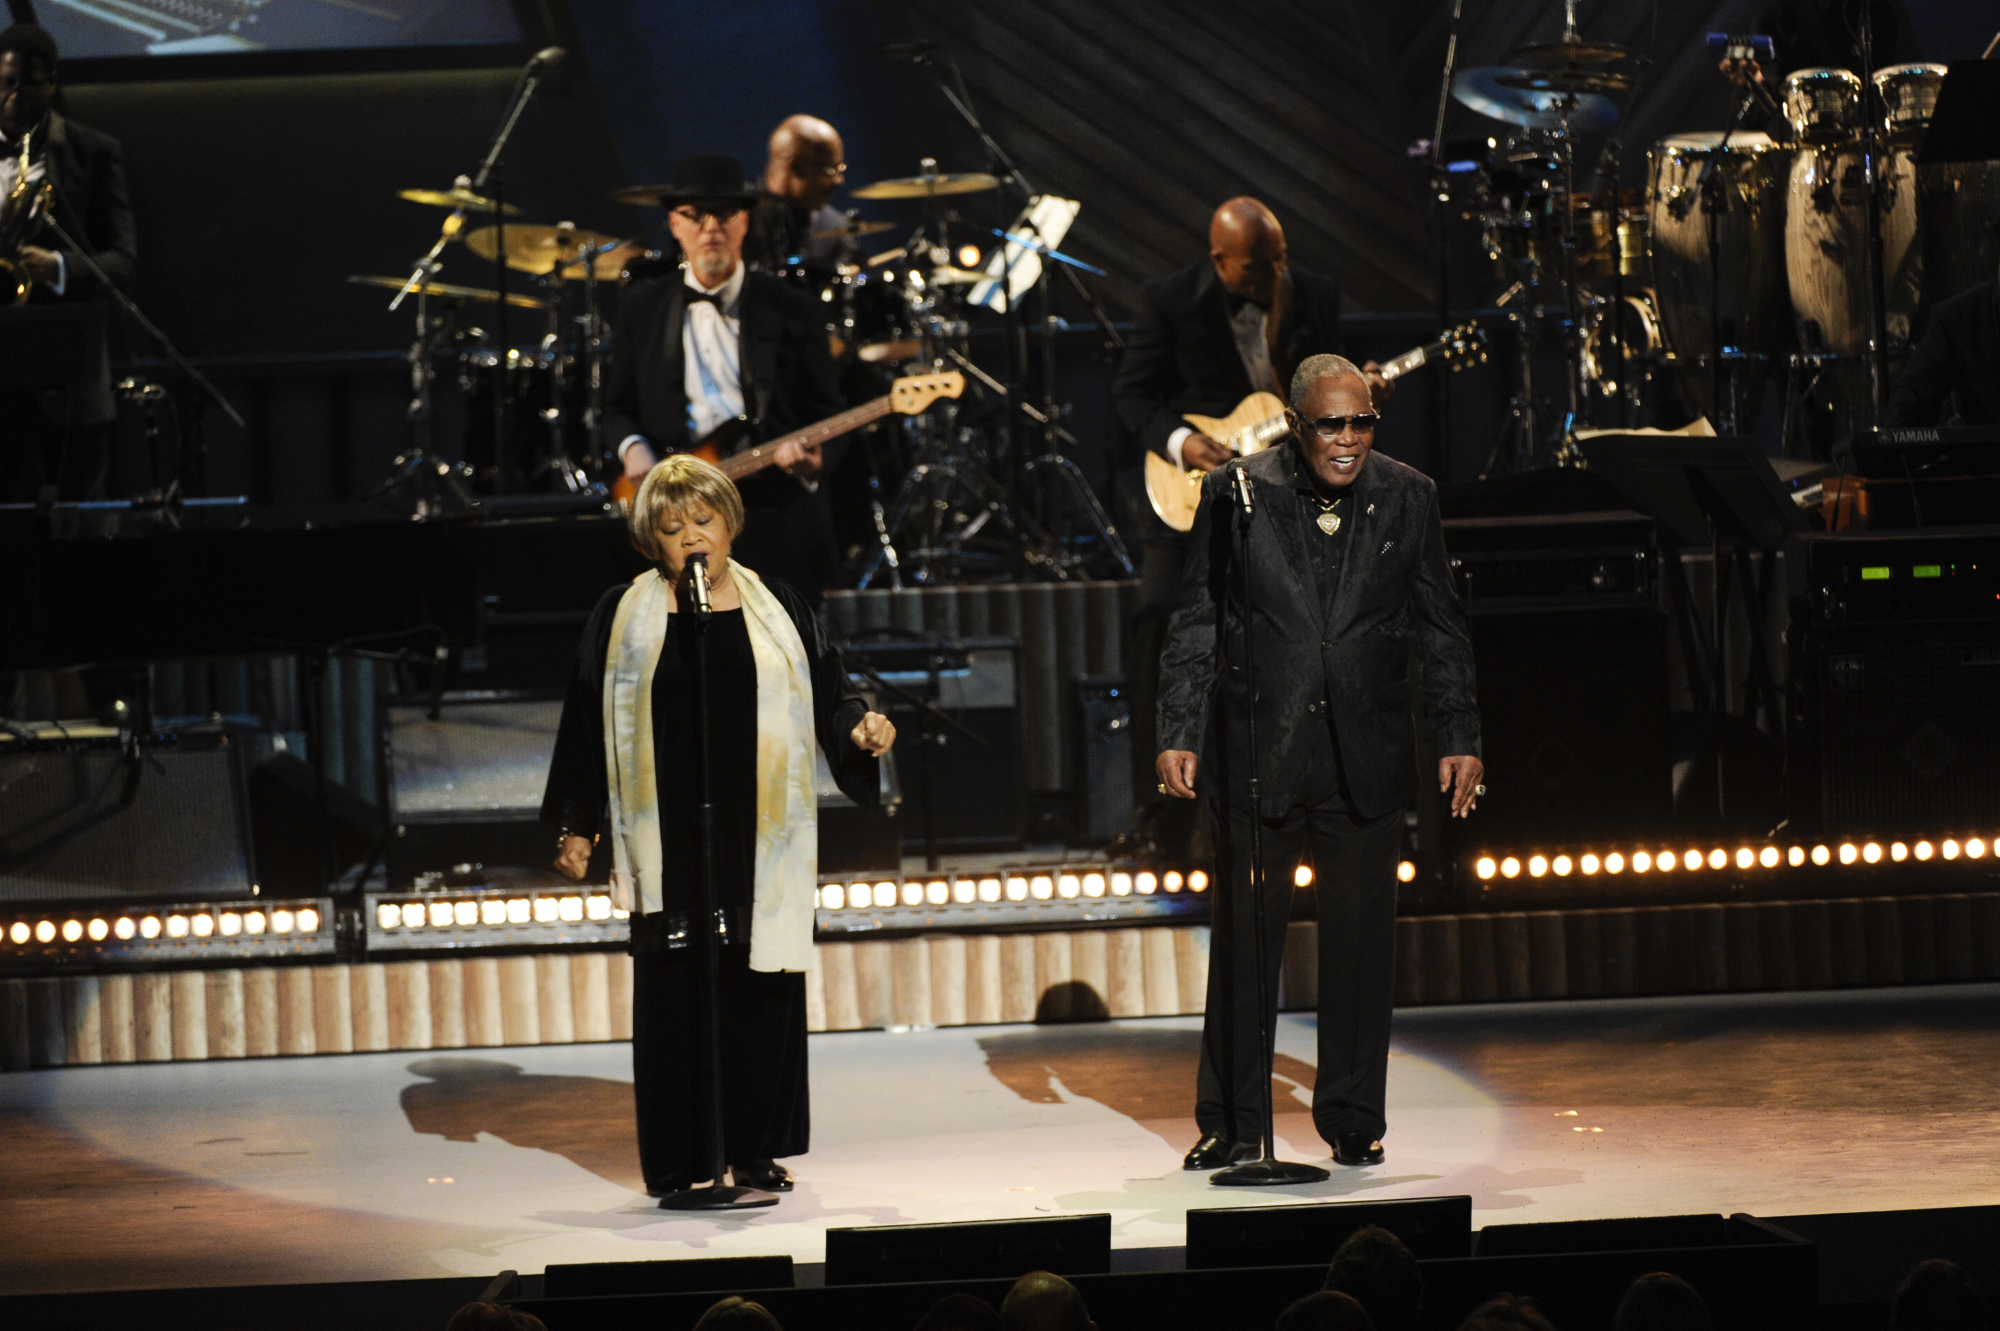 Mavis Staples and Sam Moore Duet on Stage